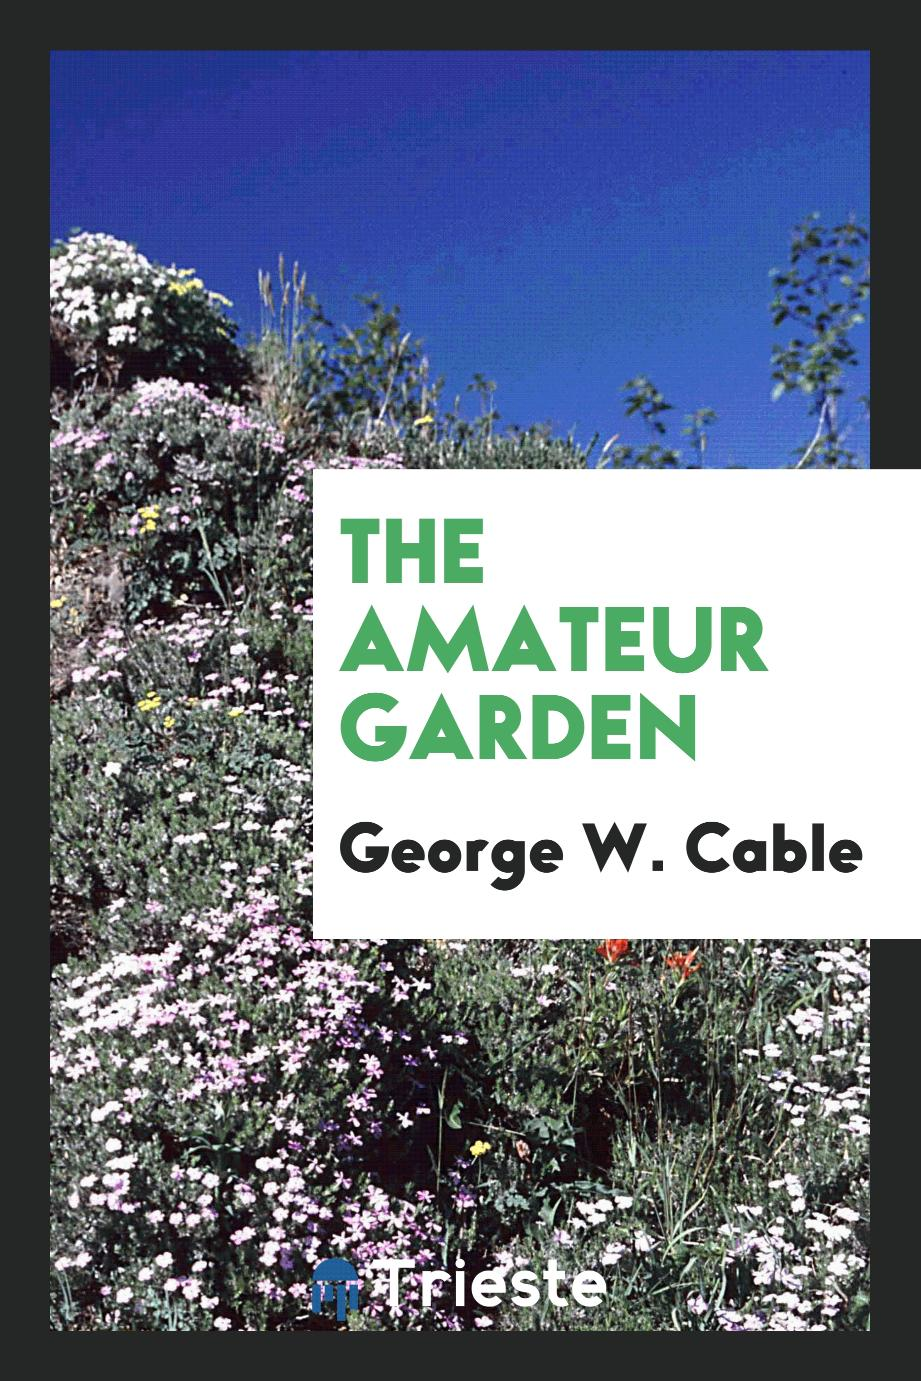 George W. Cable - The Amateur Garden